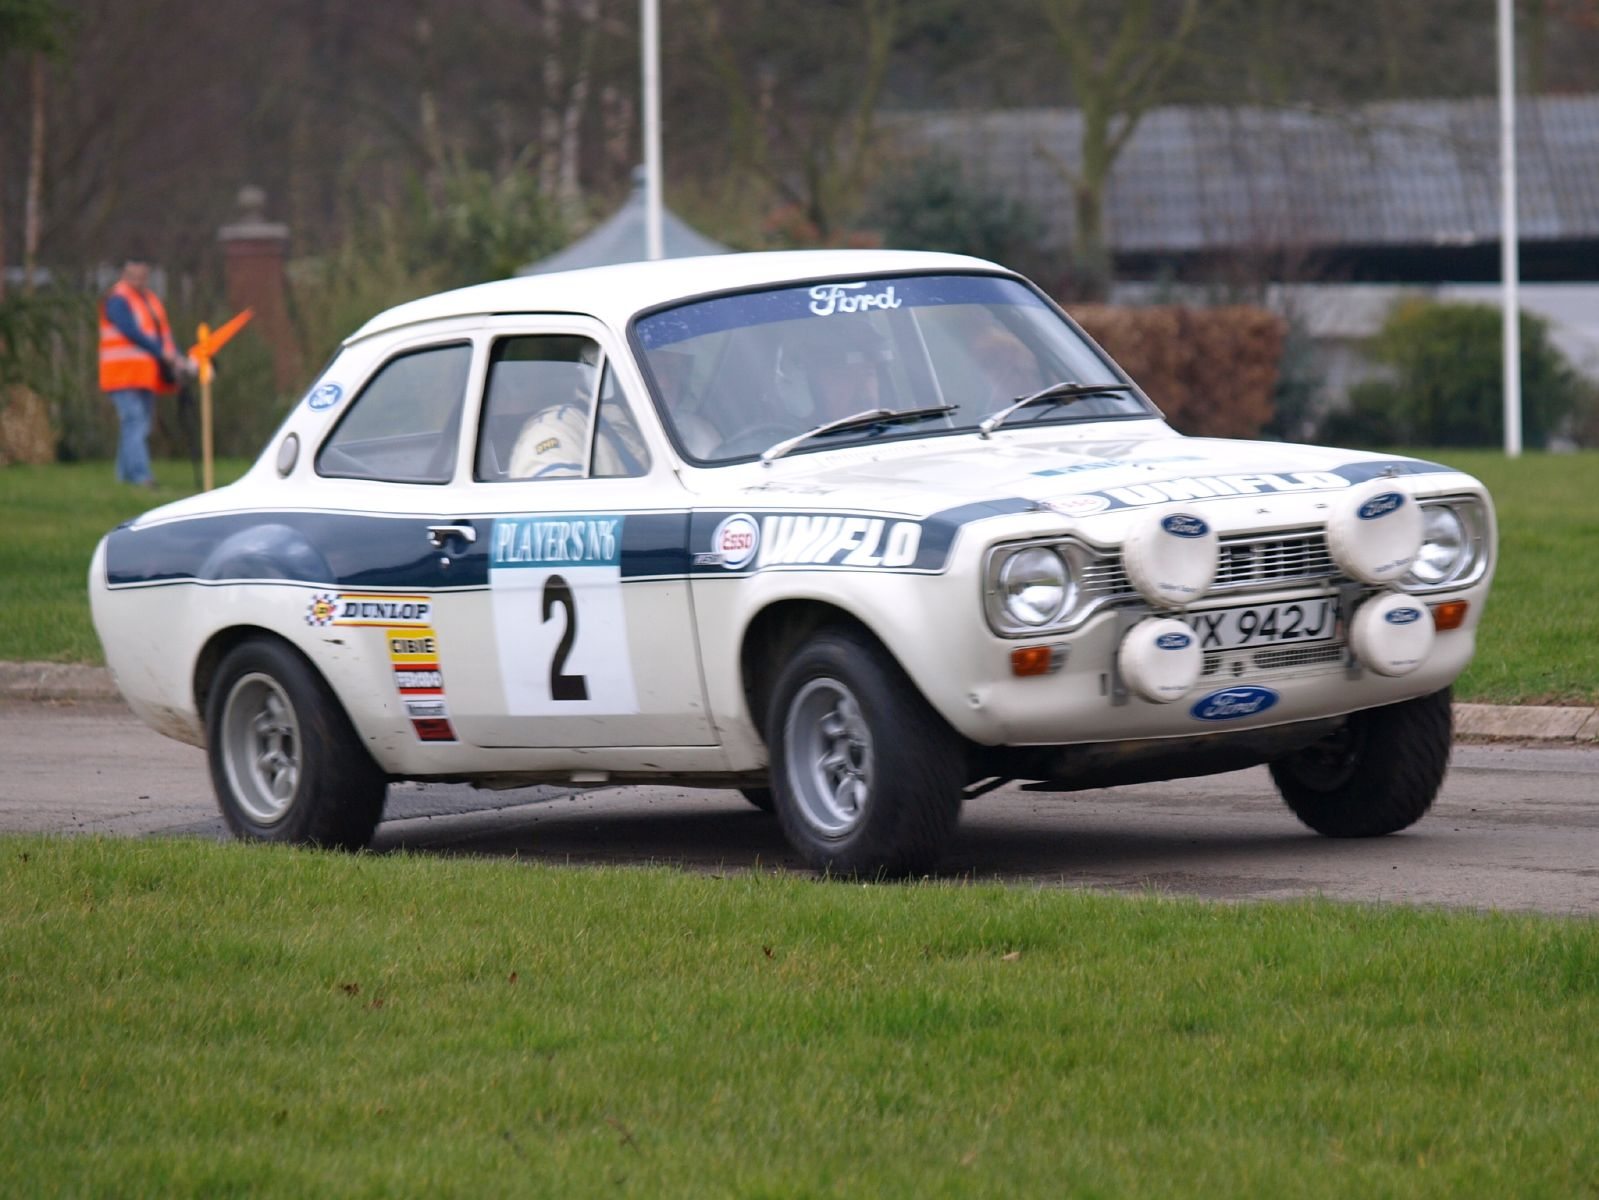 File:Ford Escort RS160...